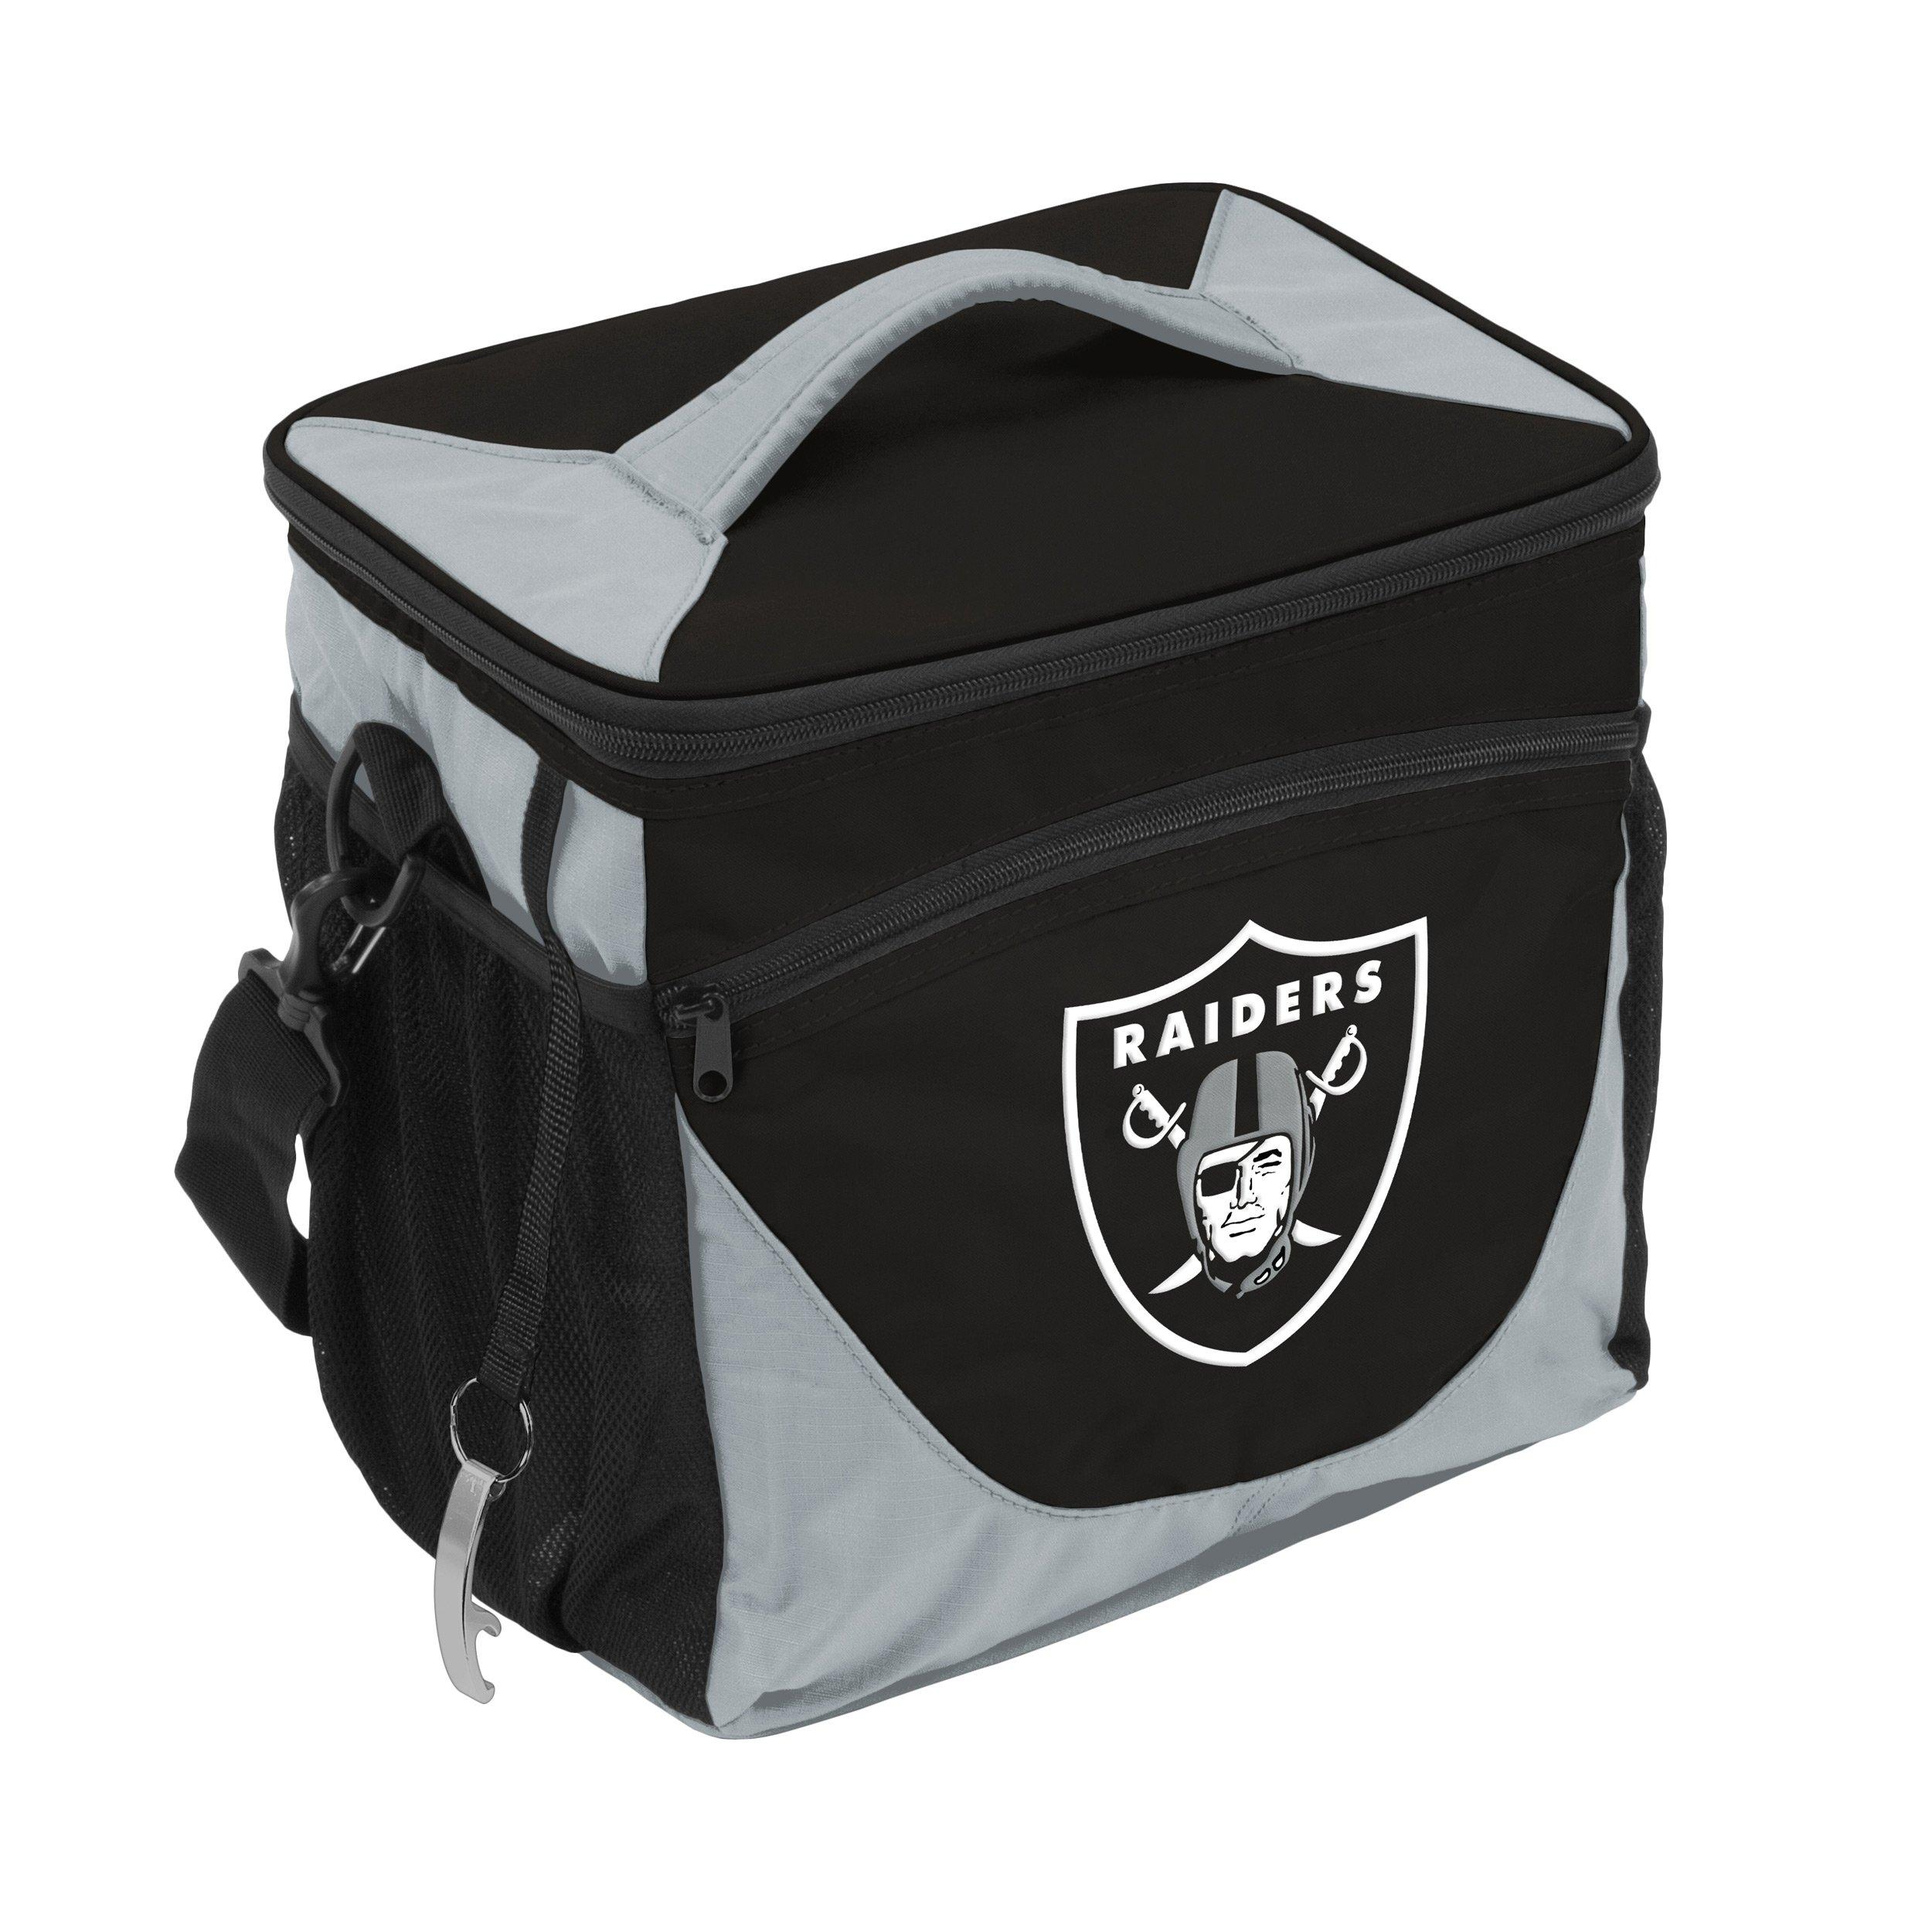 oakland raiders chair beach with leg rest logo company can cooler hibbett us main container image 1